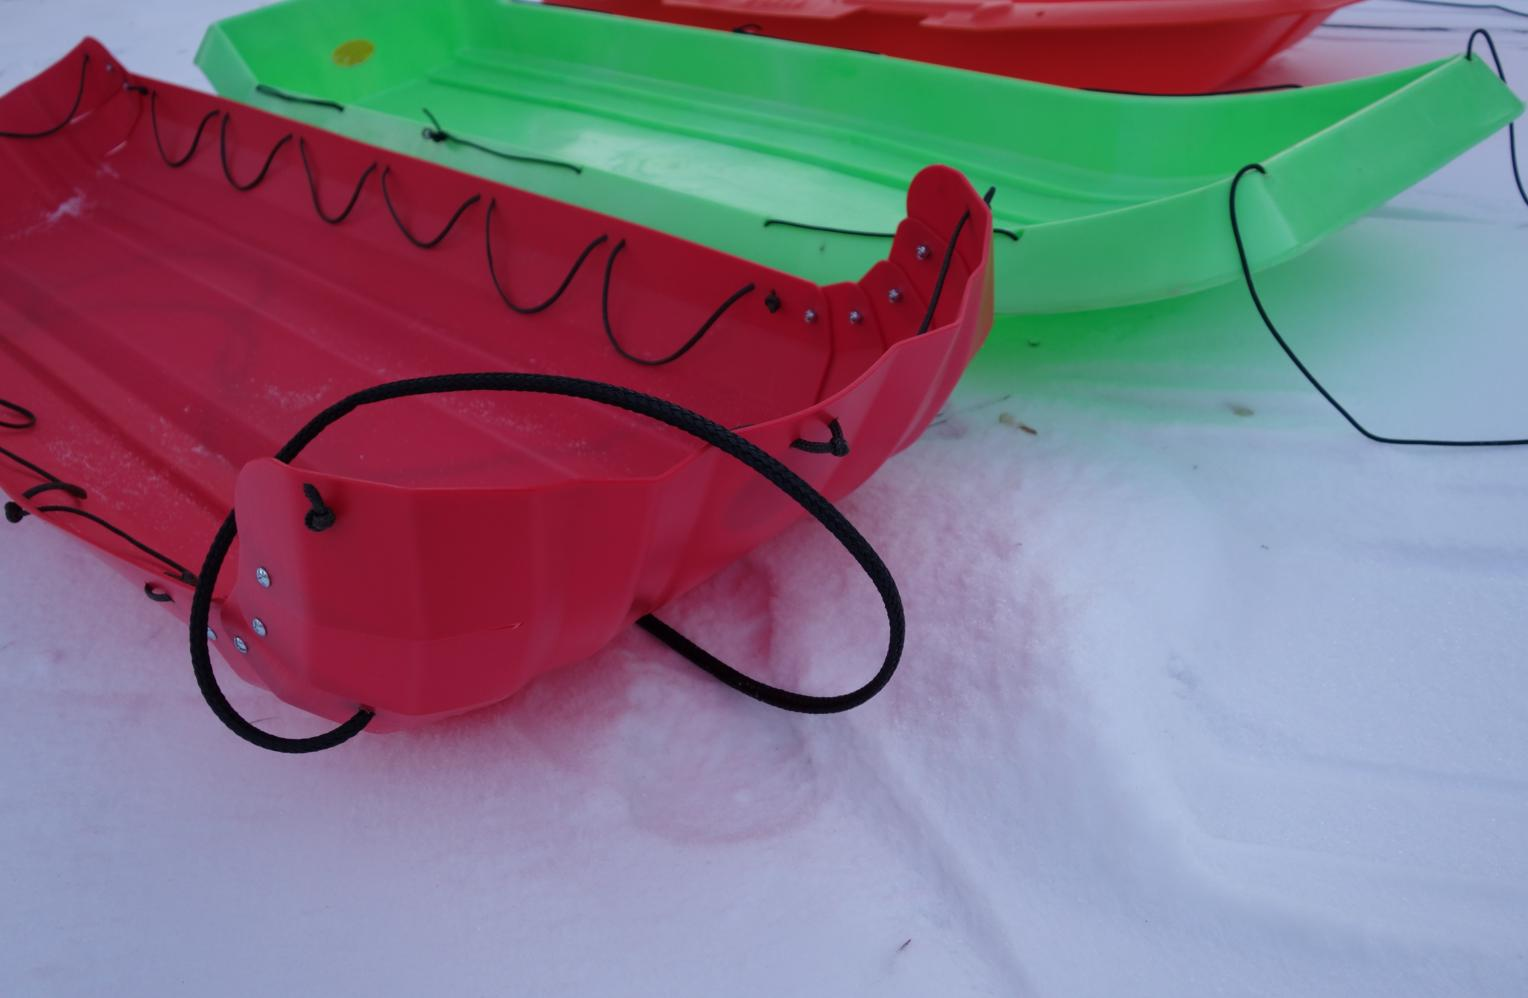 BWCA Siglin Sled Boundary Waters Winter Camping and Activities